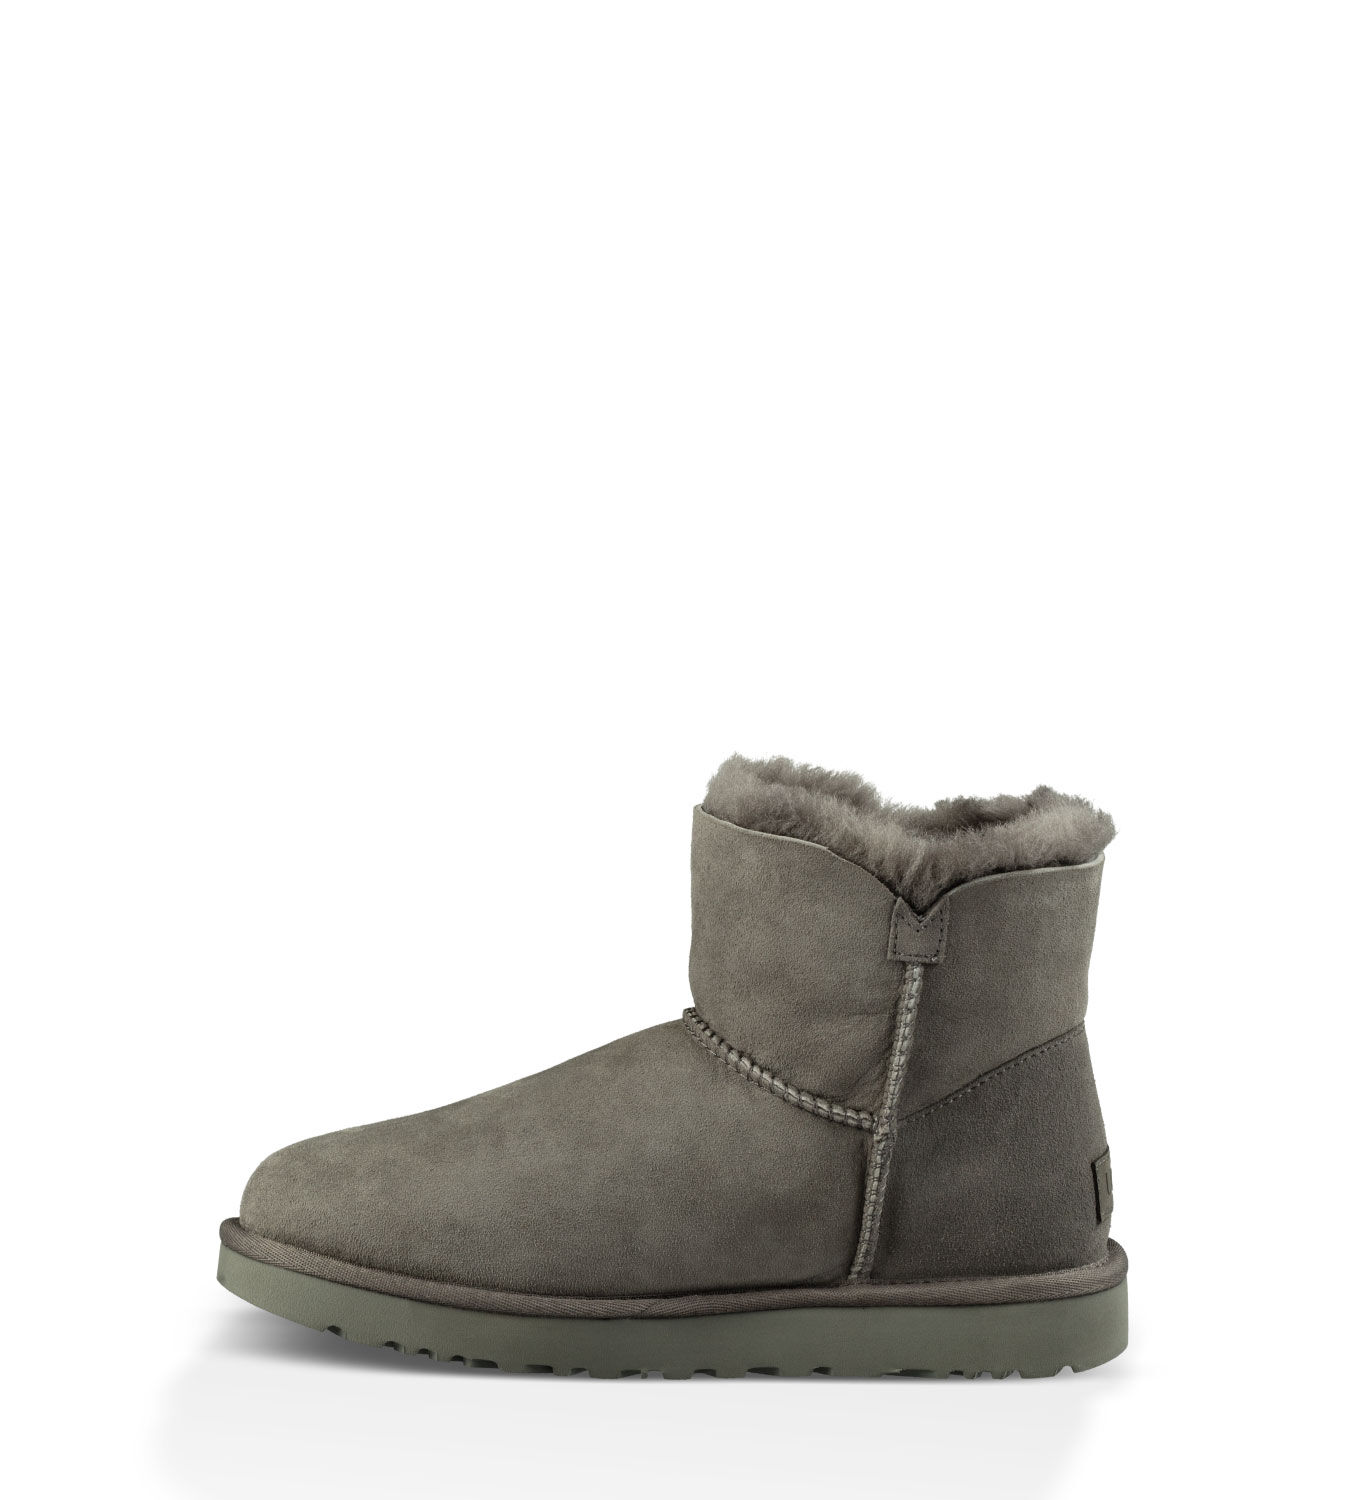 stivale ugg in saldo mini bailey button